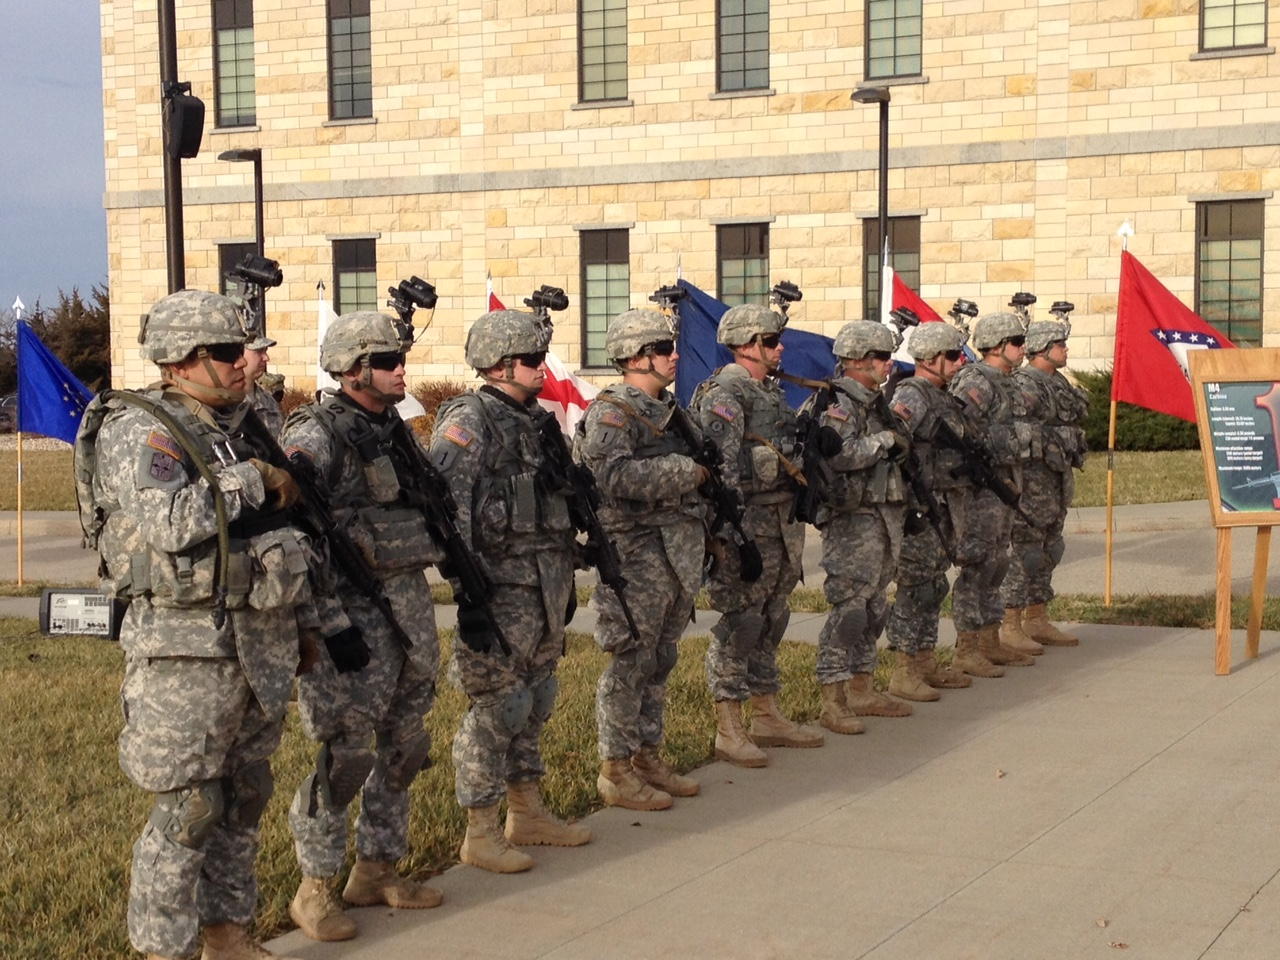 Soldiers of the First Infantry Division, also known as the Big Red One, at Fort Riley. (Photo by J. Schafer)